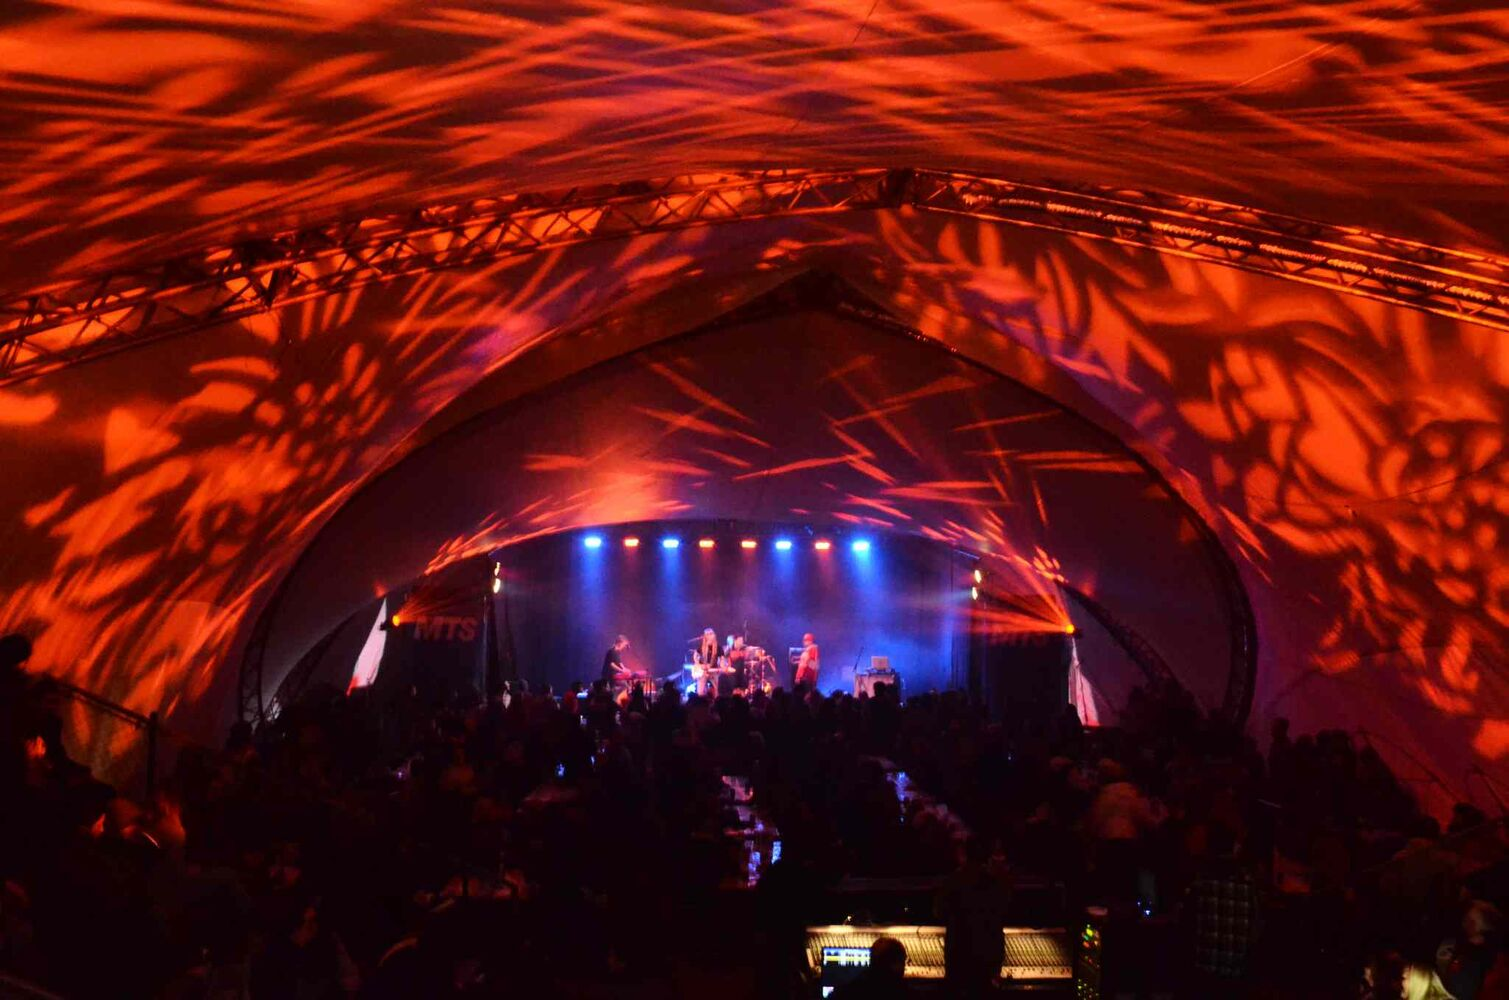 Mad' moi Zele GIRAF were on fire in the Riviere-Rouge tent. Doug Kretchmer photo